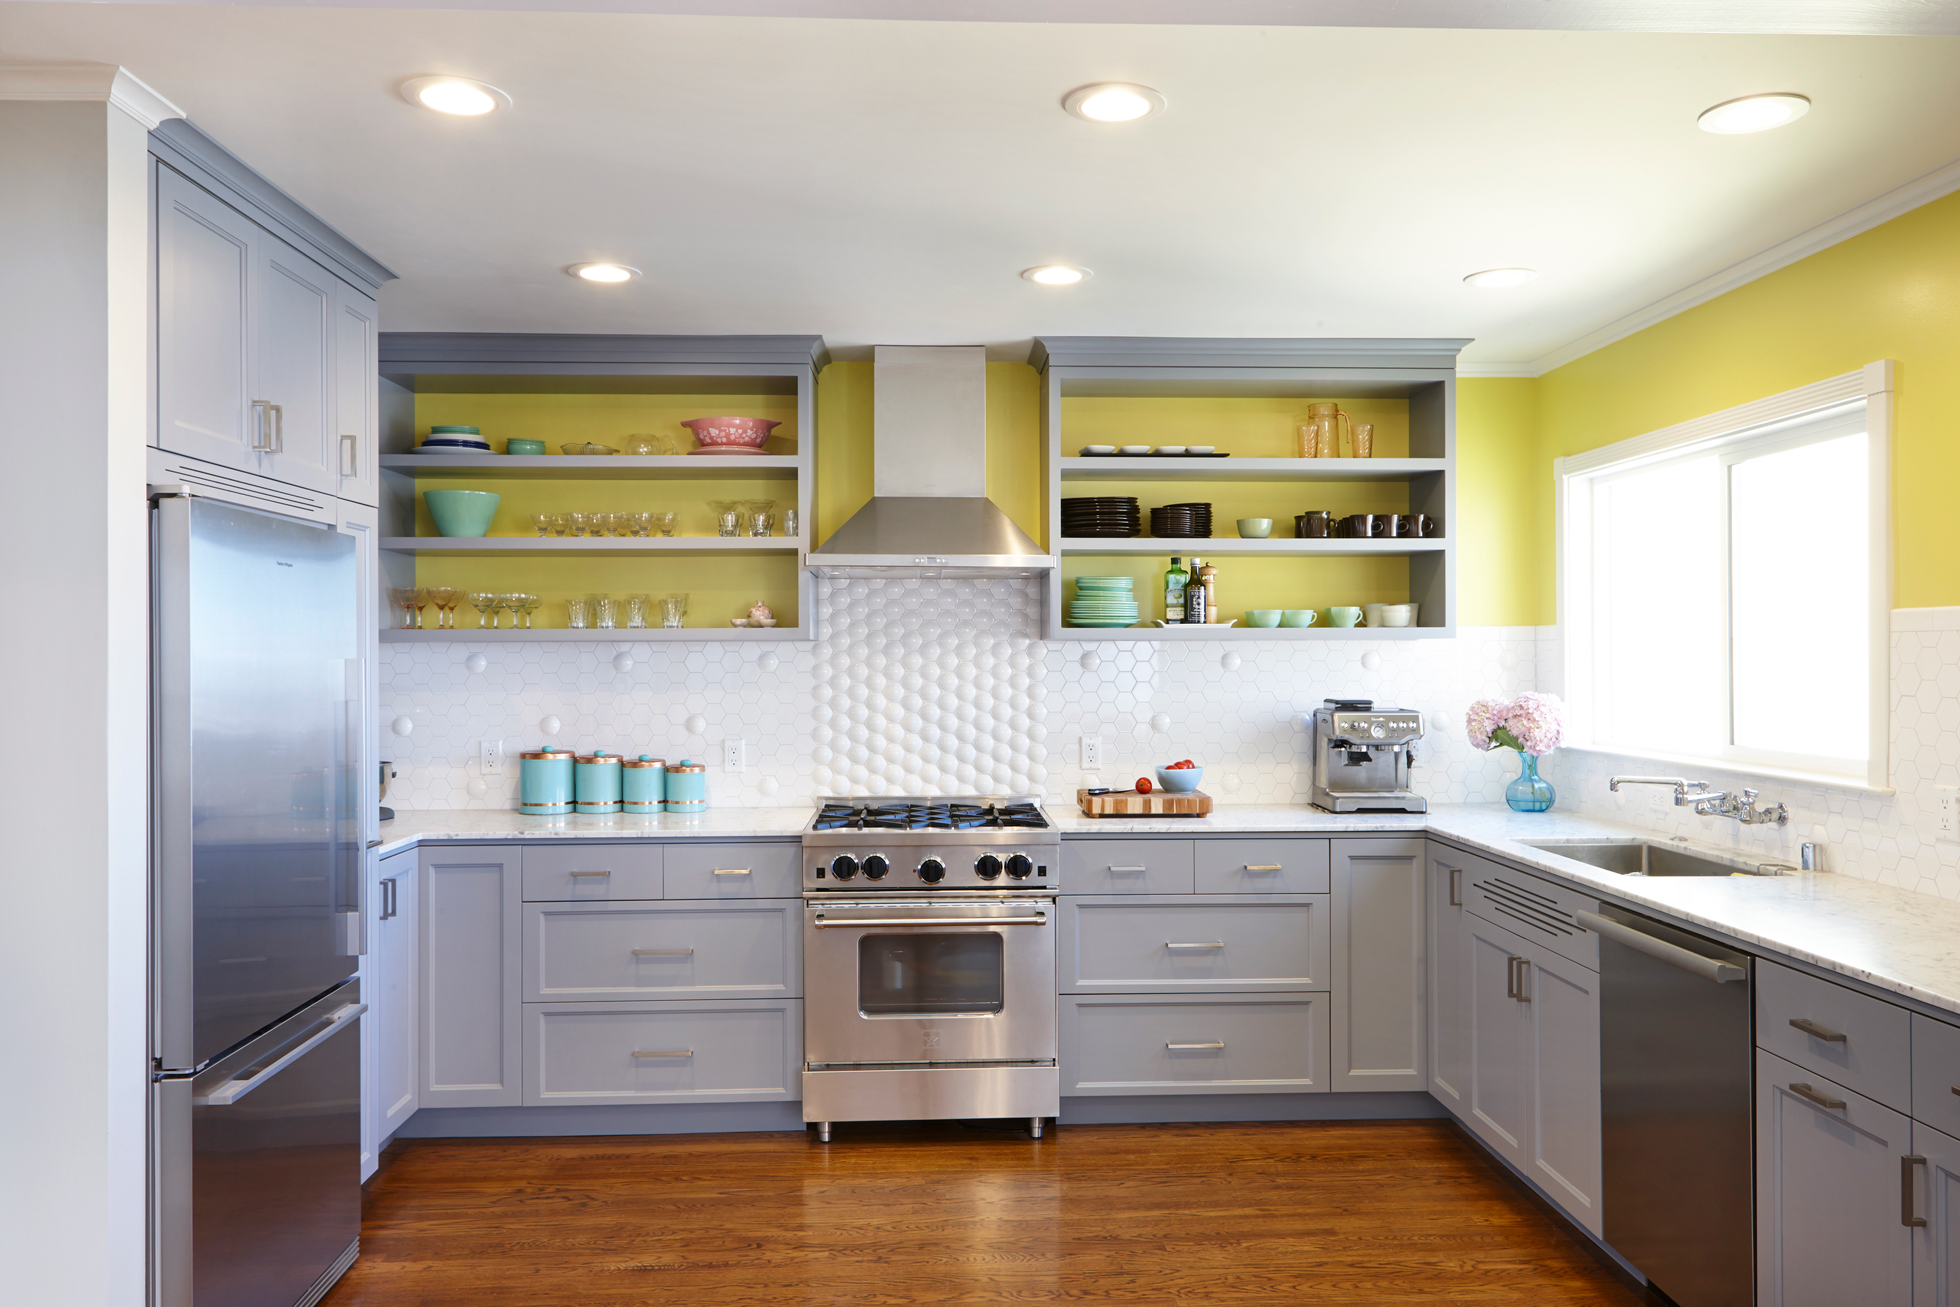 Yellow Kitchen Design Ideas Interior Paint Color Ideas Painting Inside Kitchen Cabinets Tile